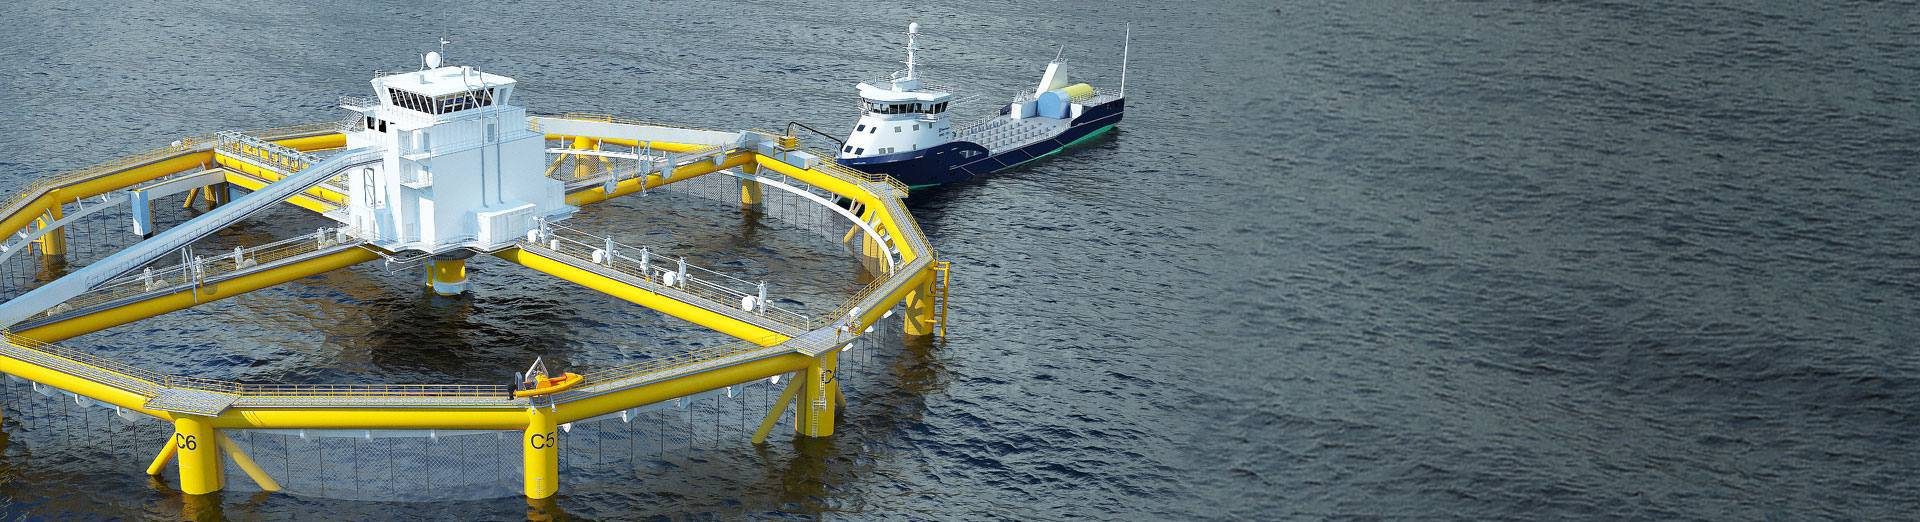 A New Kind Of Self-Sustaining Fishery Could Off-Set The Worst